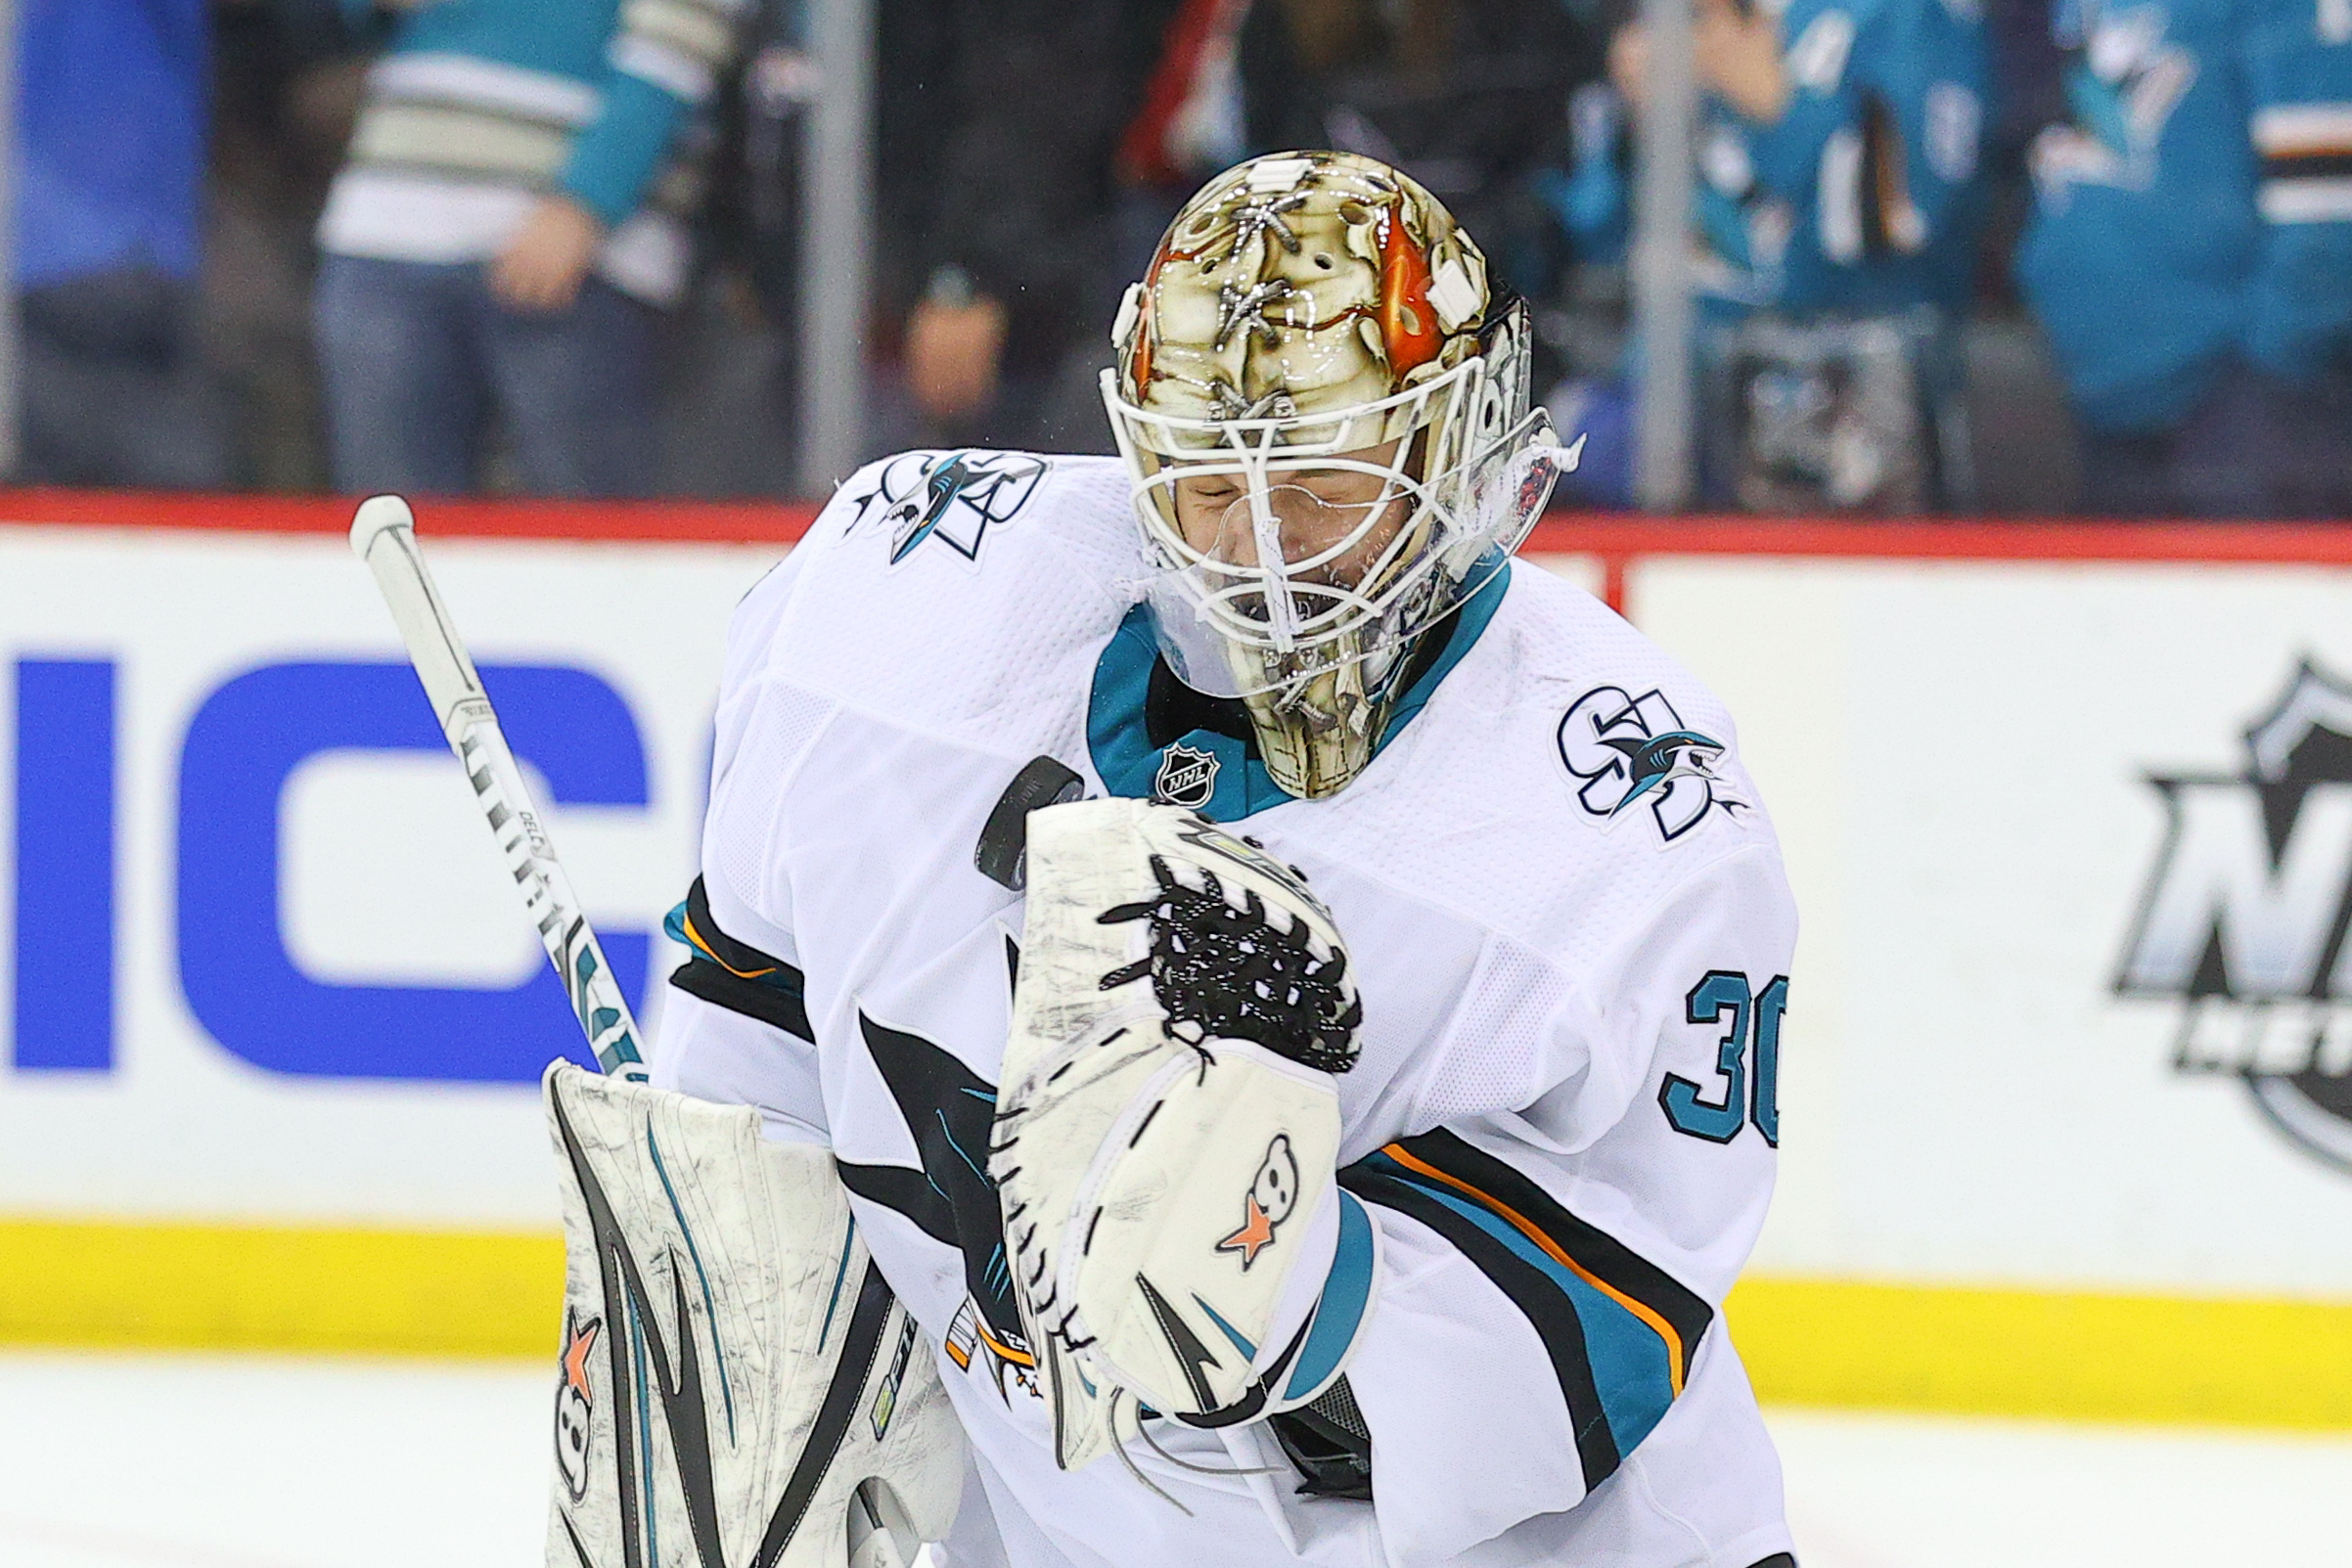 San Jose Sharks goaltender Aaron Dell (30) warms up prior to the National Hockey League game between the New Jersey Devils and the San Jose Sharks on February 20, 2020 at the Prudential Center in Newark, NJ.